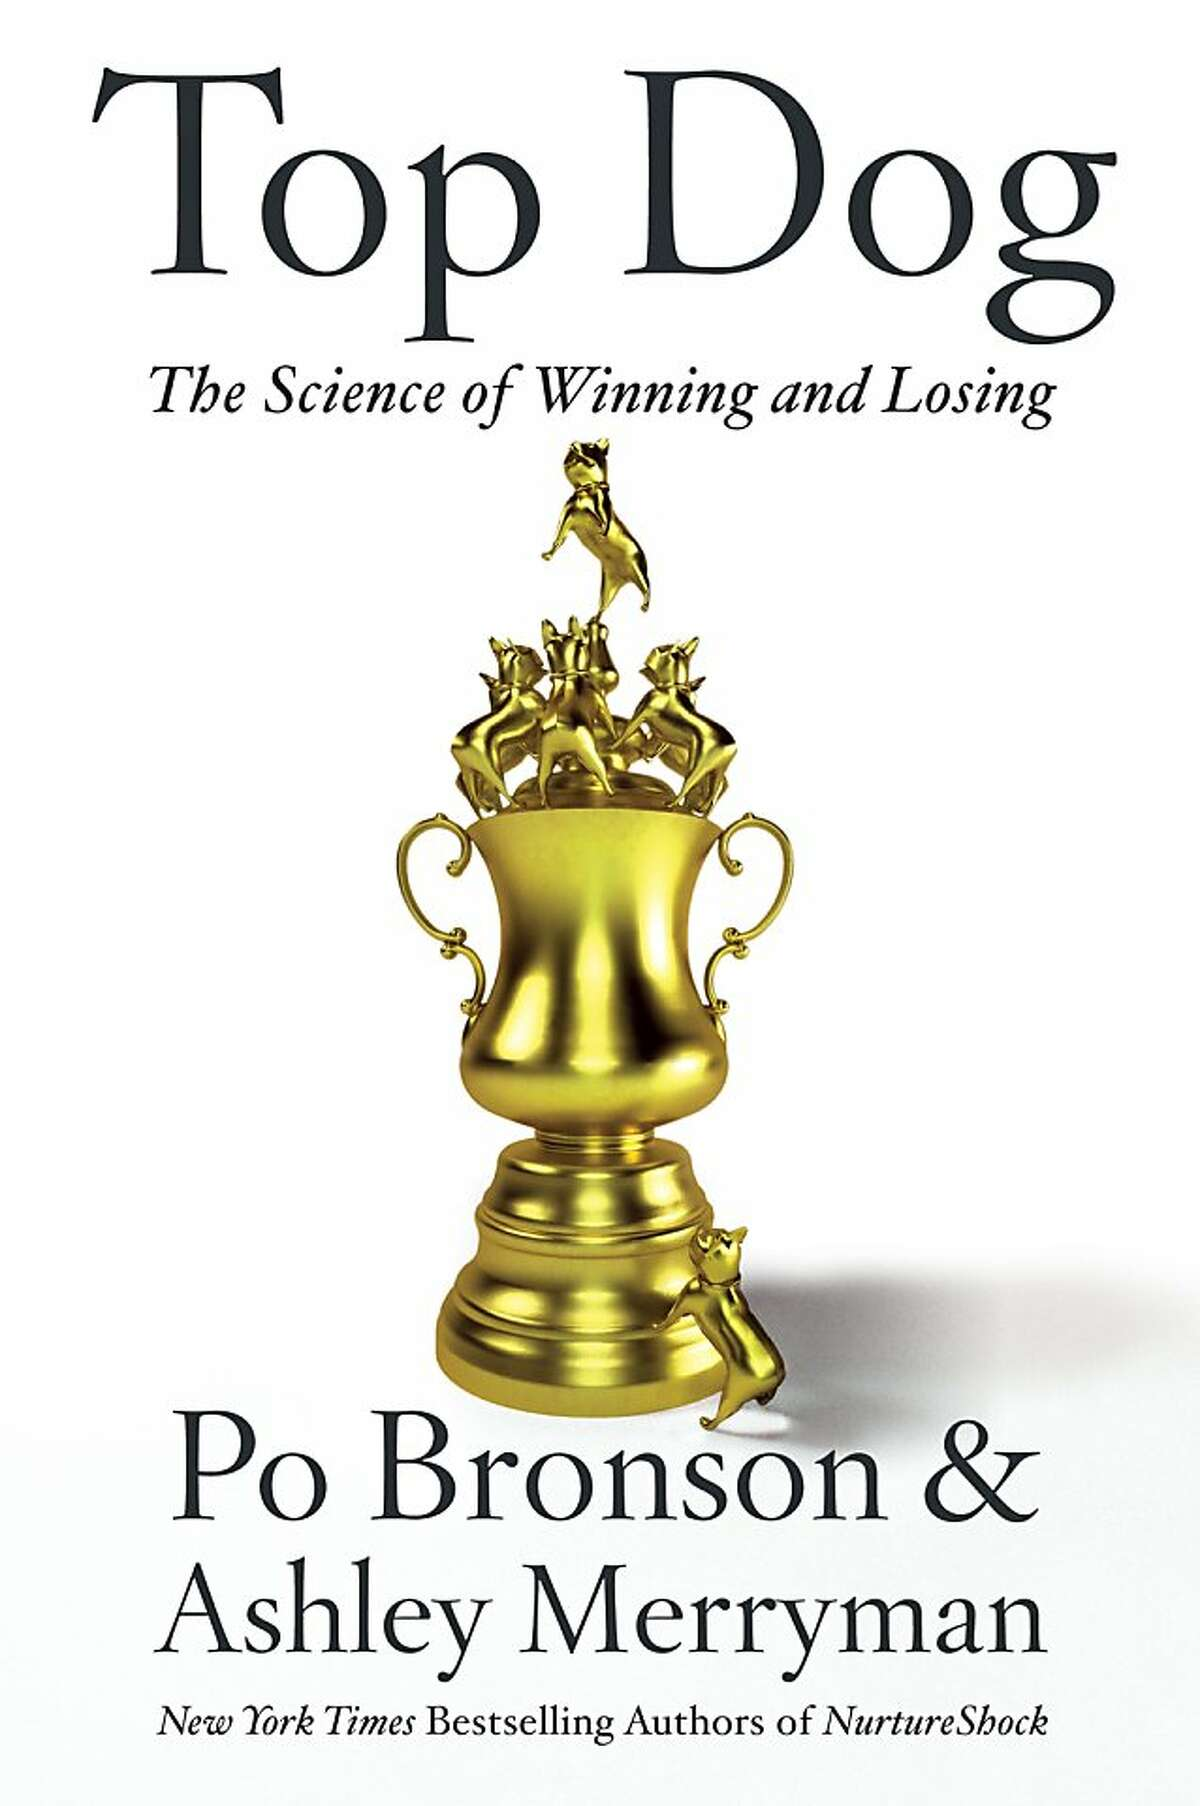 Top Dog: The Science of Winning and Losing, by Po Bronson and Ashley Merryman